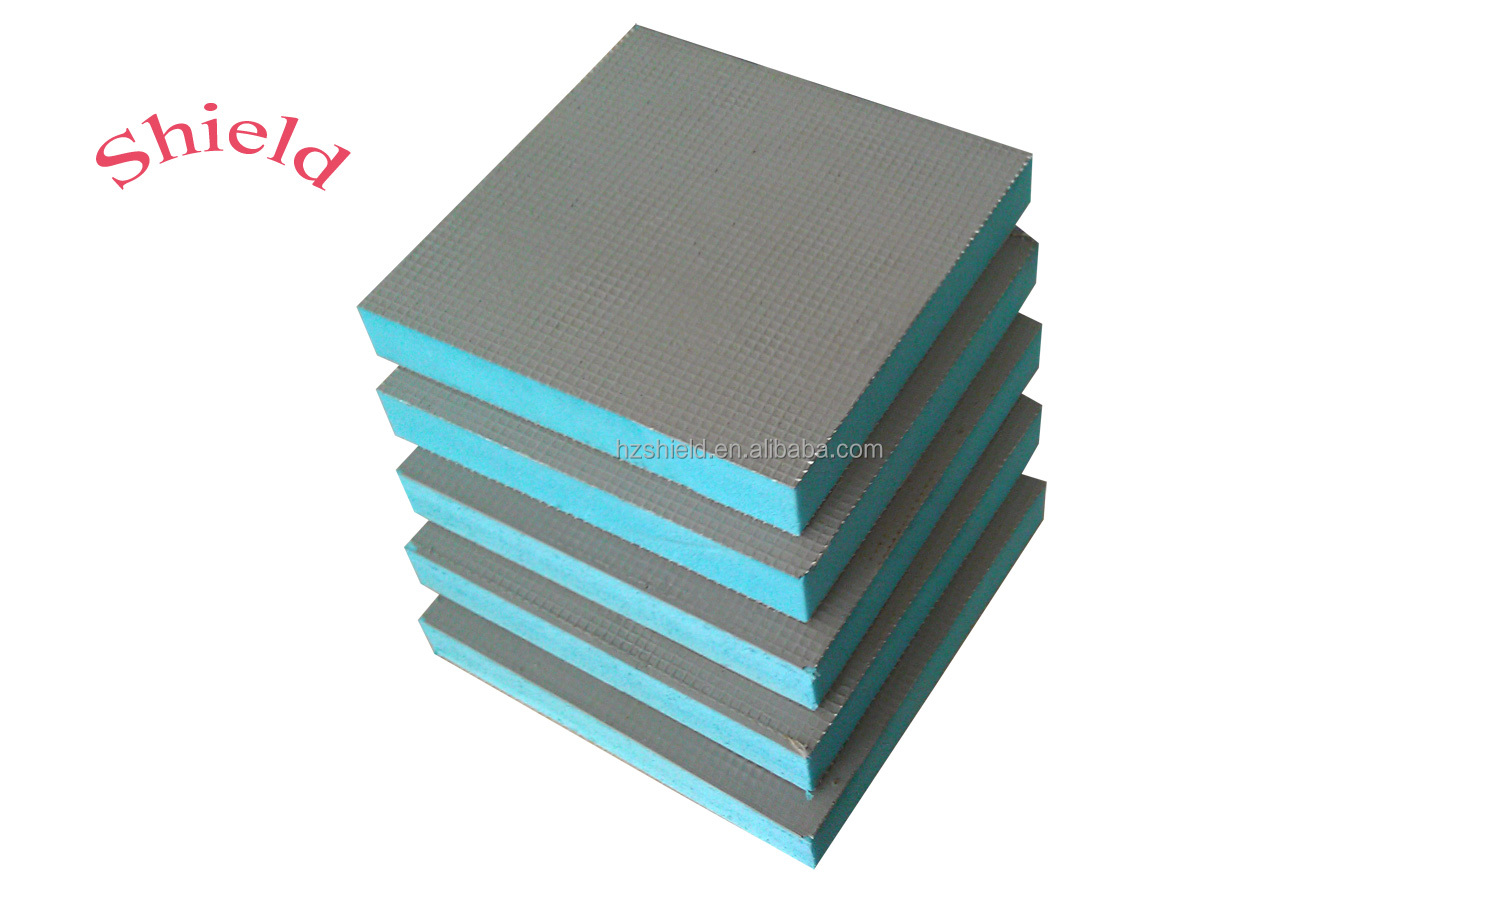 Bathroom Xps Wall Insulation And Floor Waterproof Tile Backer Board ...